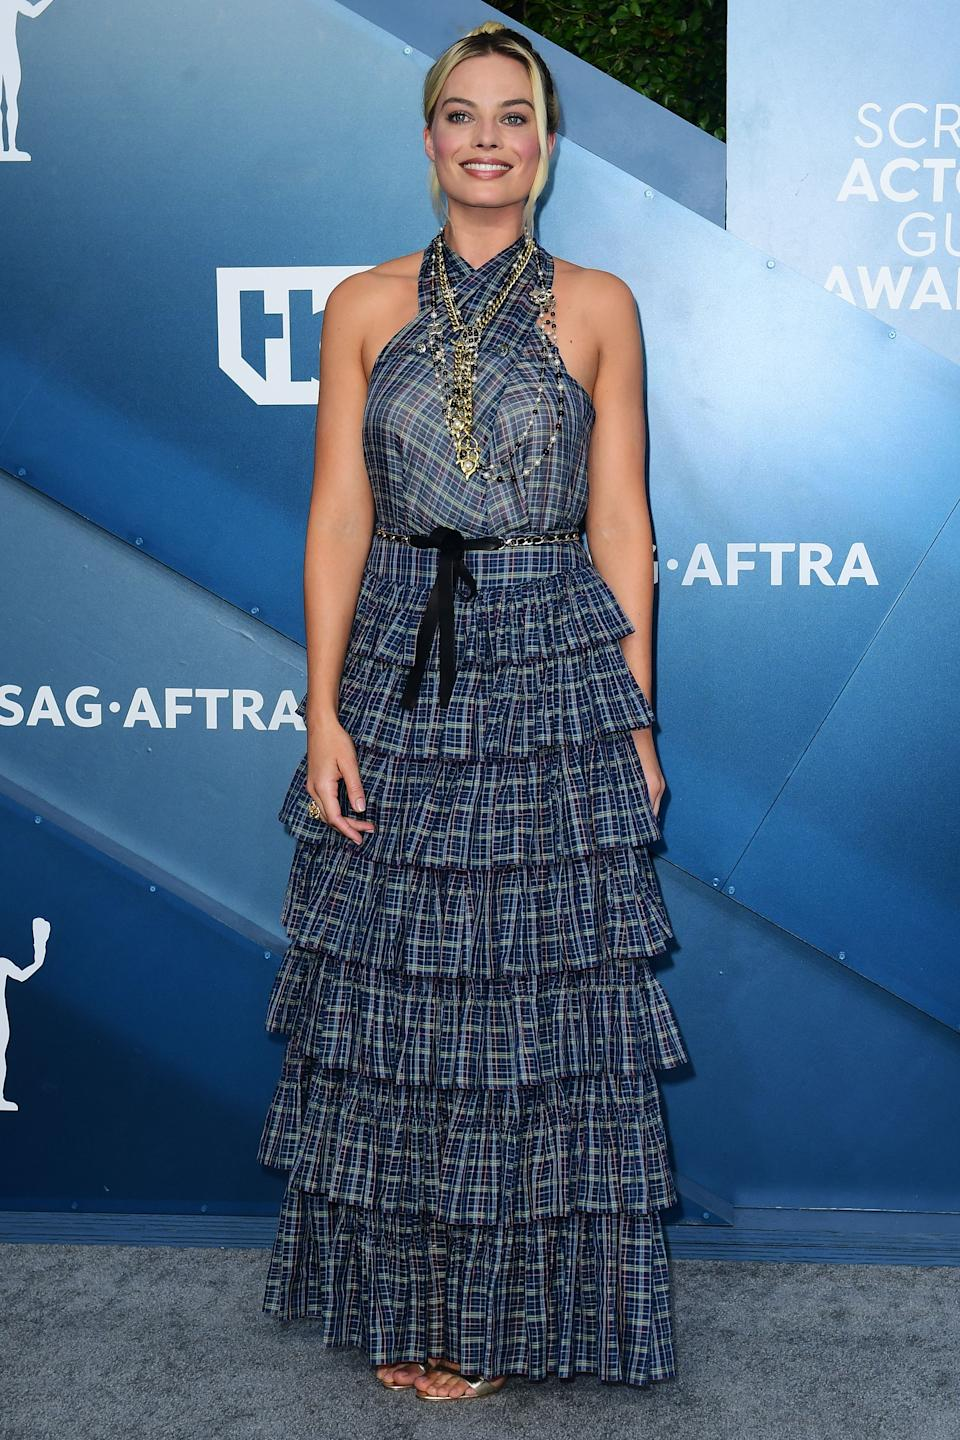 <h2>Margot Robbie in Chanel</h2><br>Margot Robbie has brought her fair share of Chanel looks to the red carpet during this award season, but this checkered number just might be our favorite one to date.